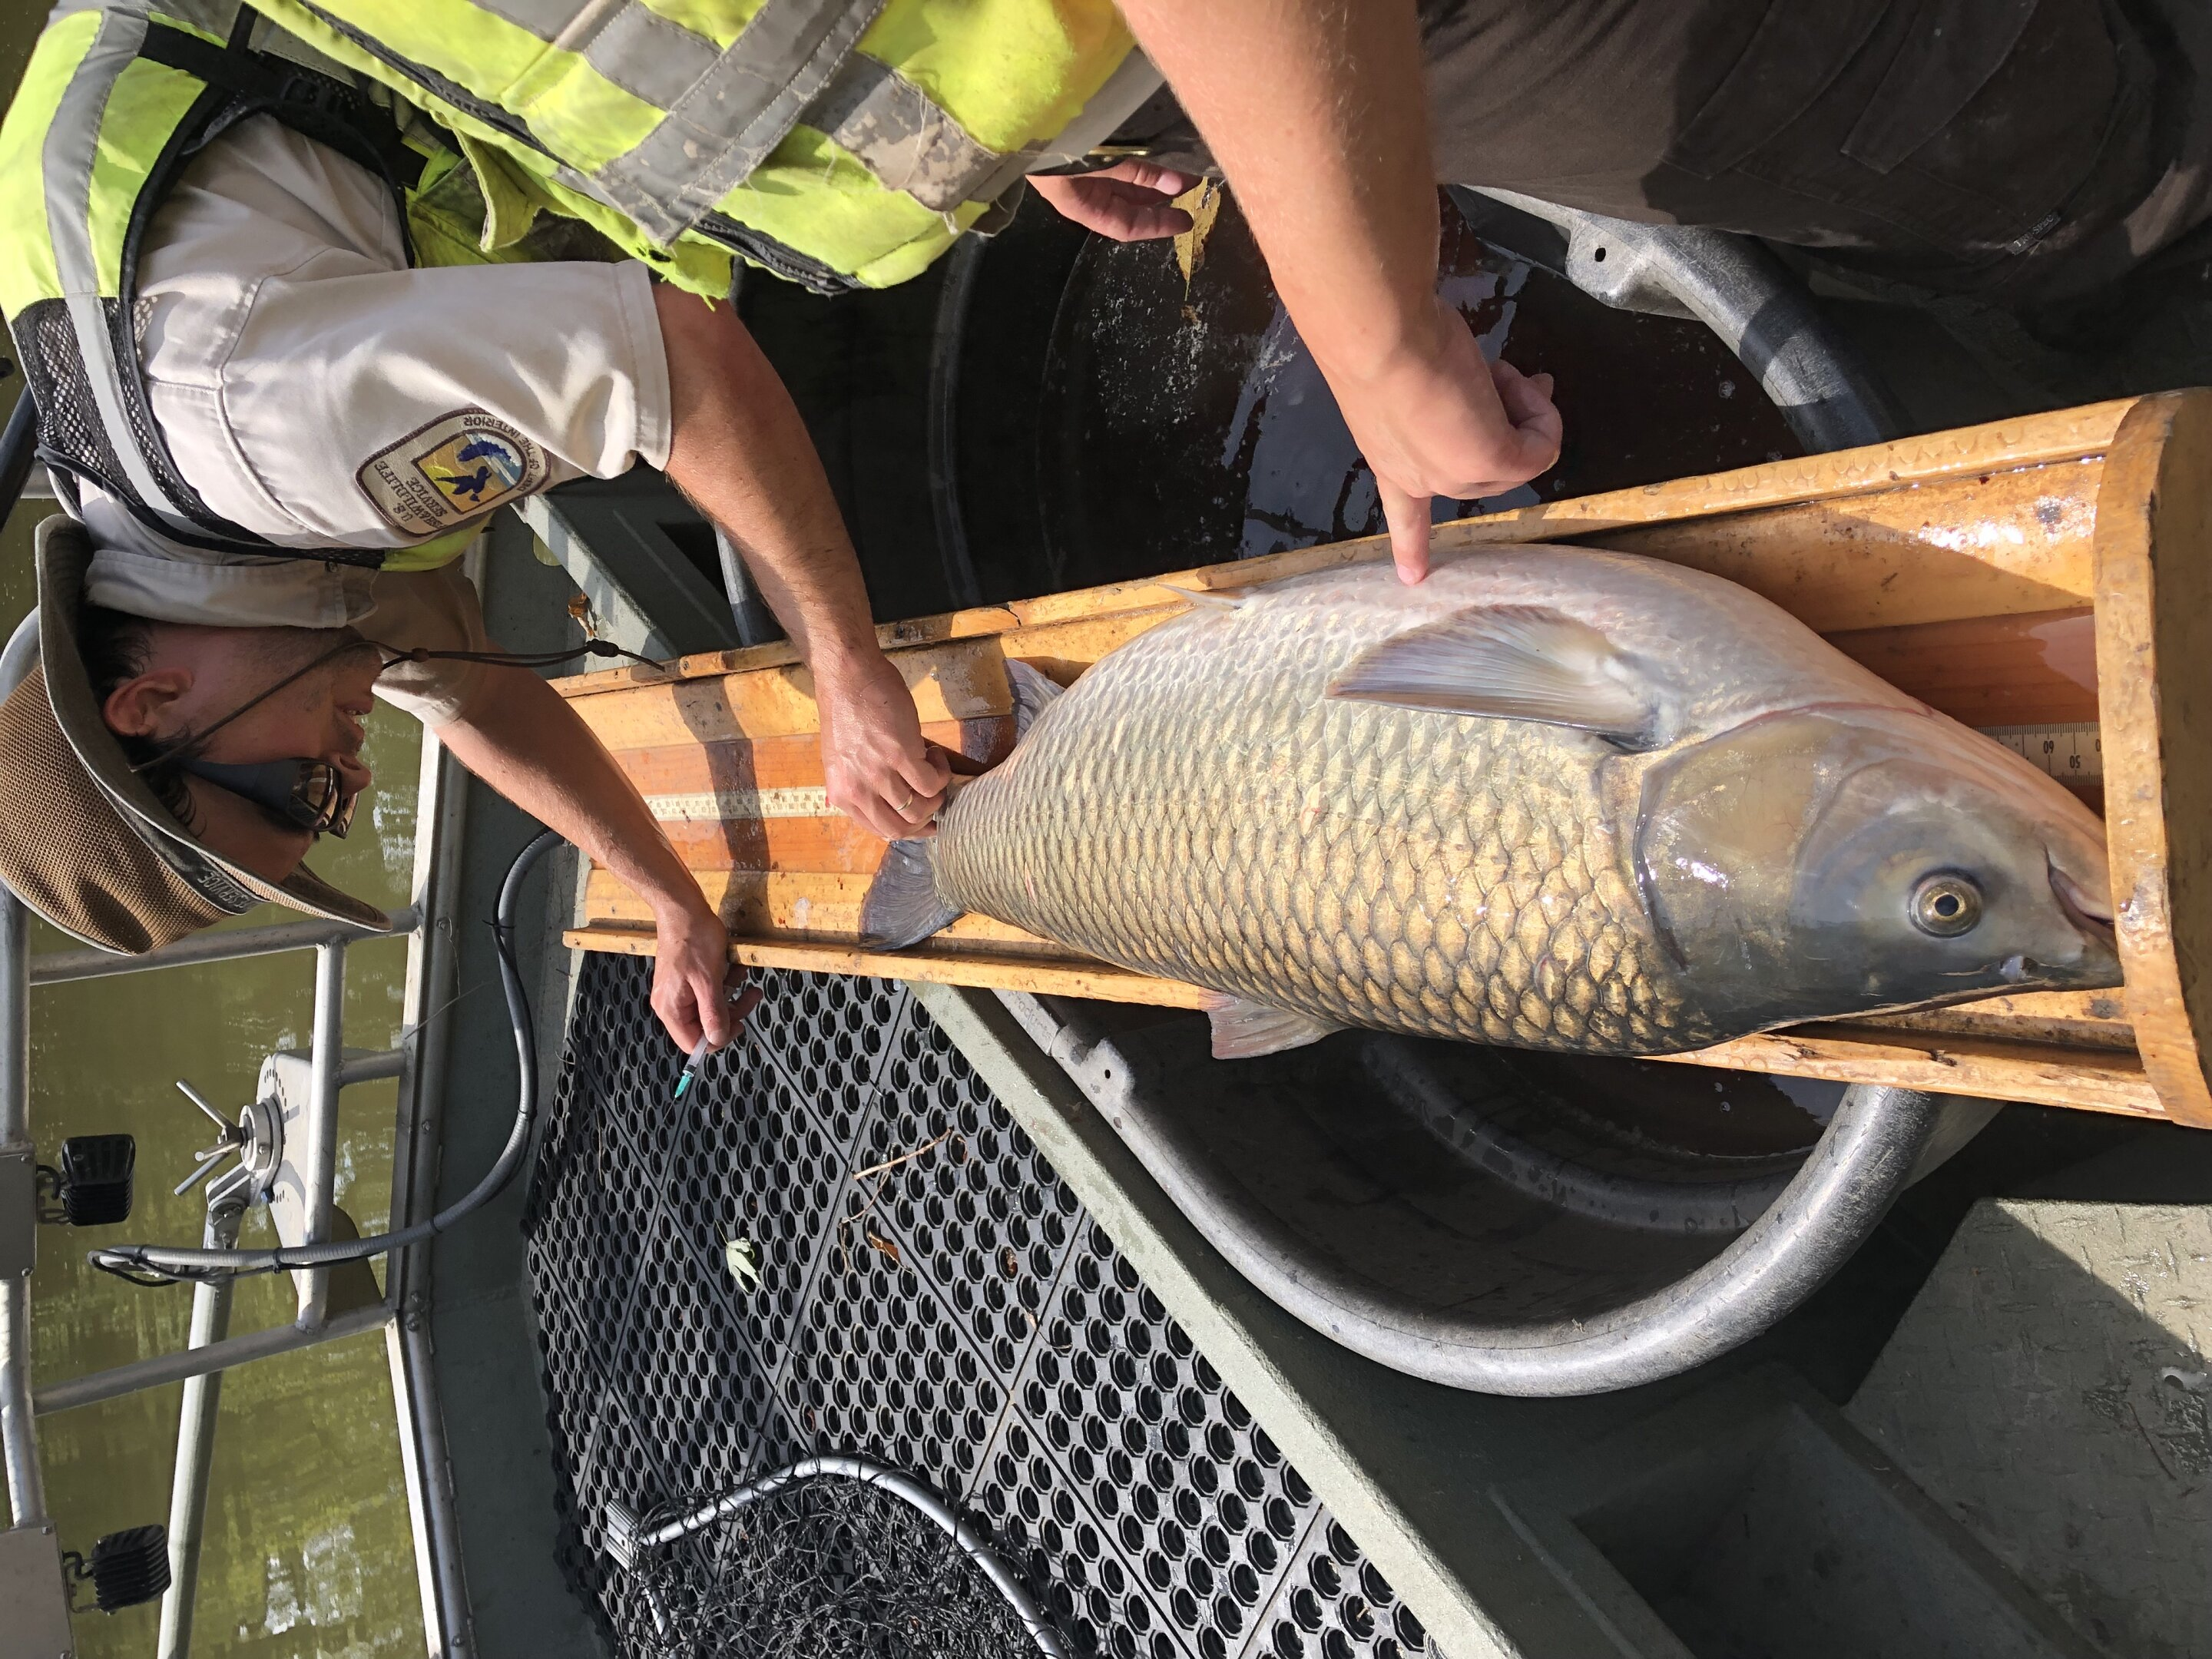 Tagged grass carp unknowingly betray their species